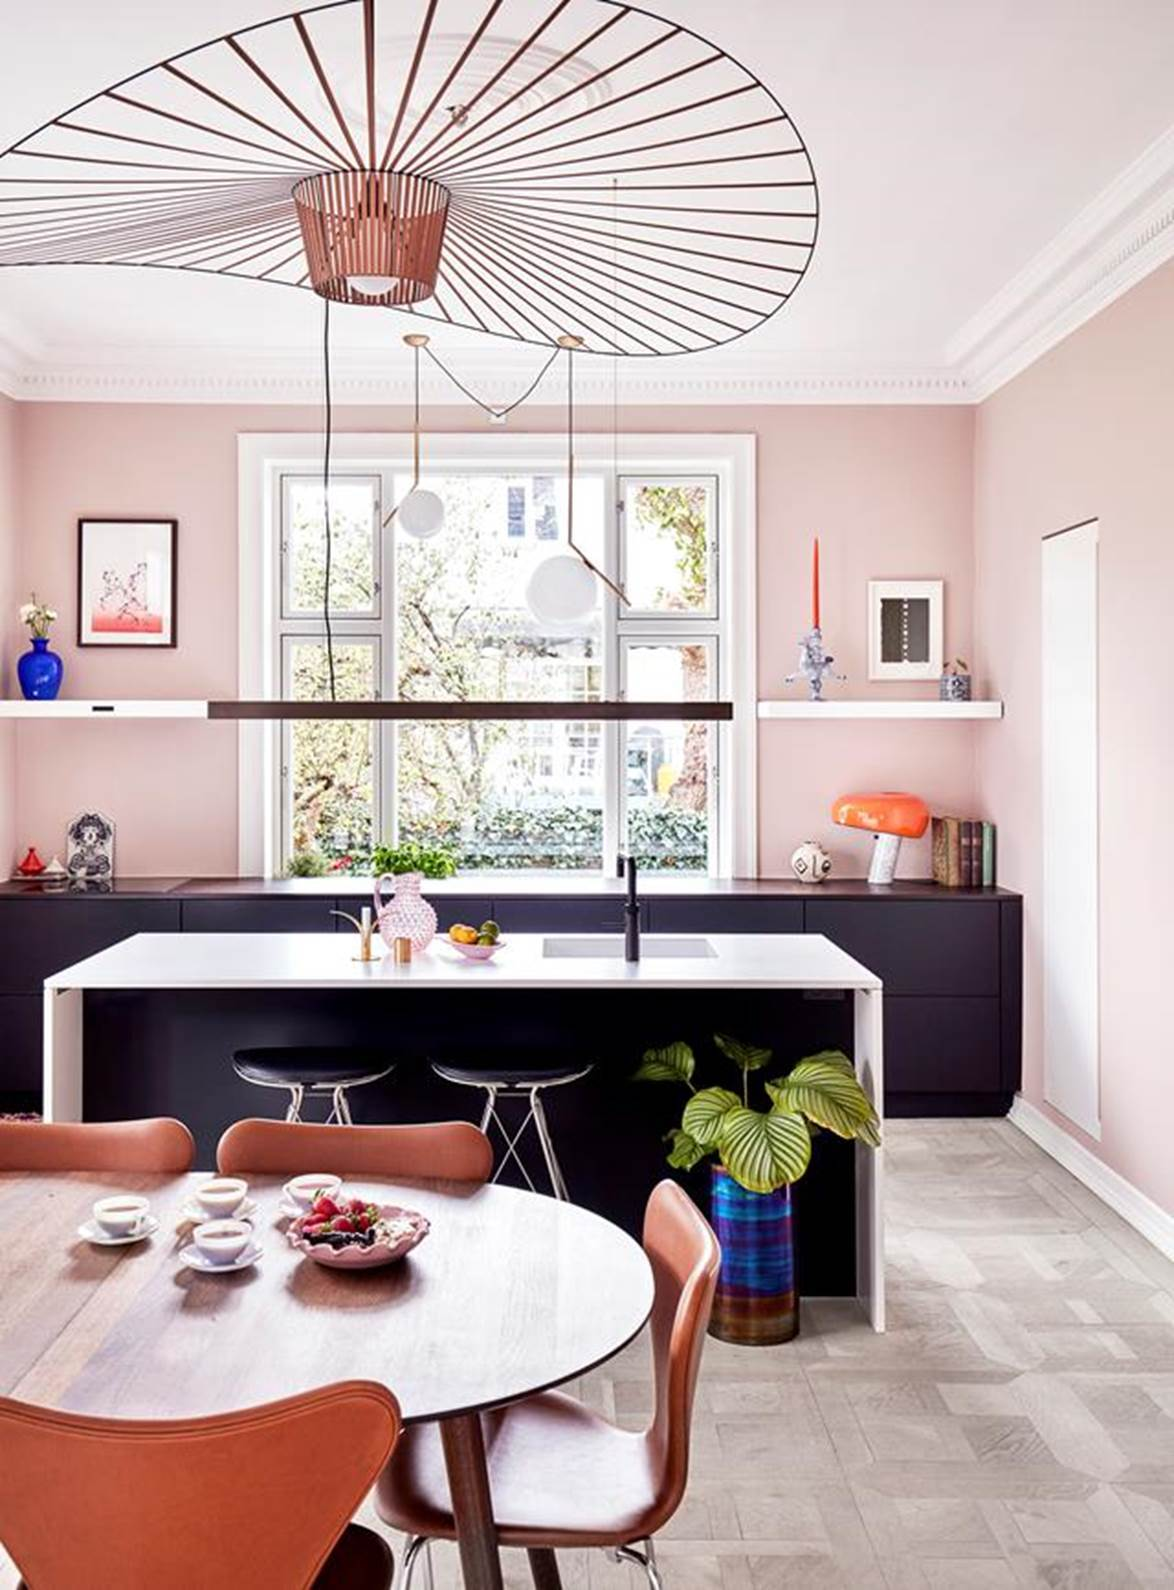 """A carefully chosen colour palette of pale pink, orange and deep blue are splashed throughout this charming kitchen in an [eclectic apartment](https://www.homestolove.com.au/colourful-eclectic-style-apartment-19184